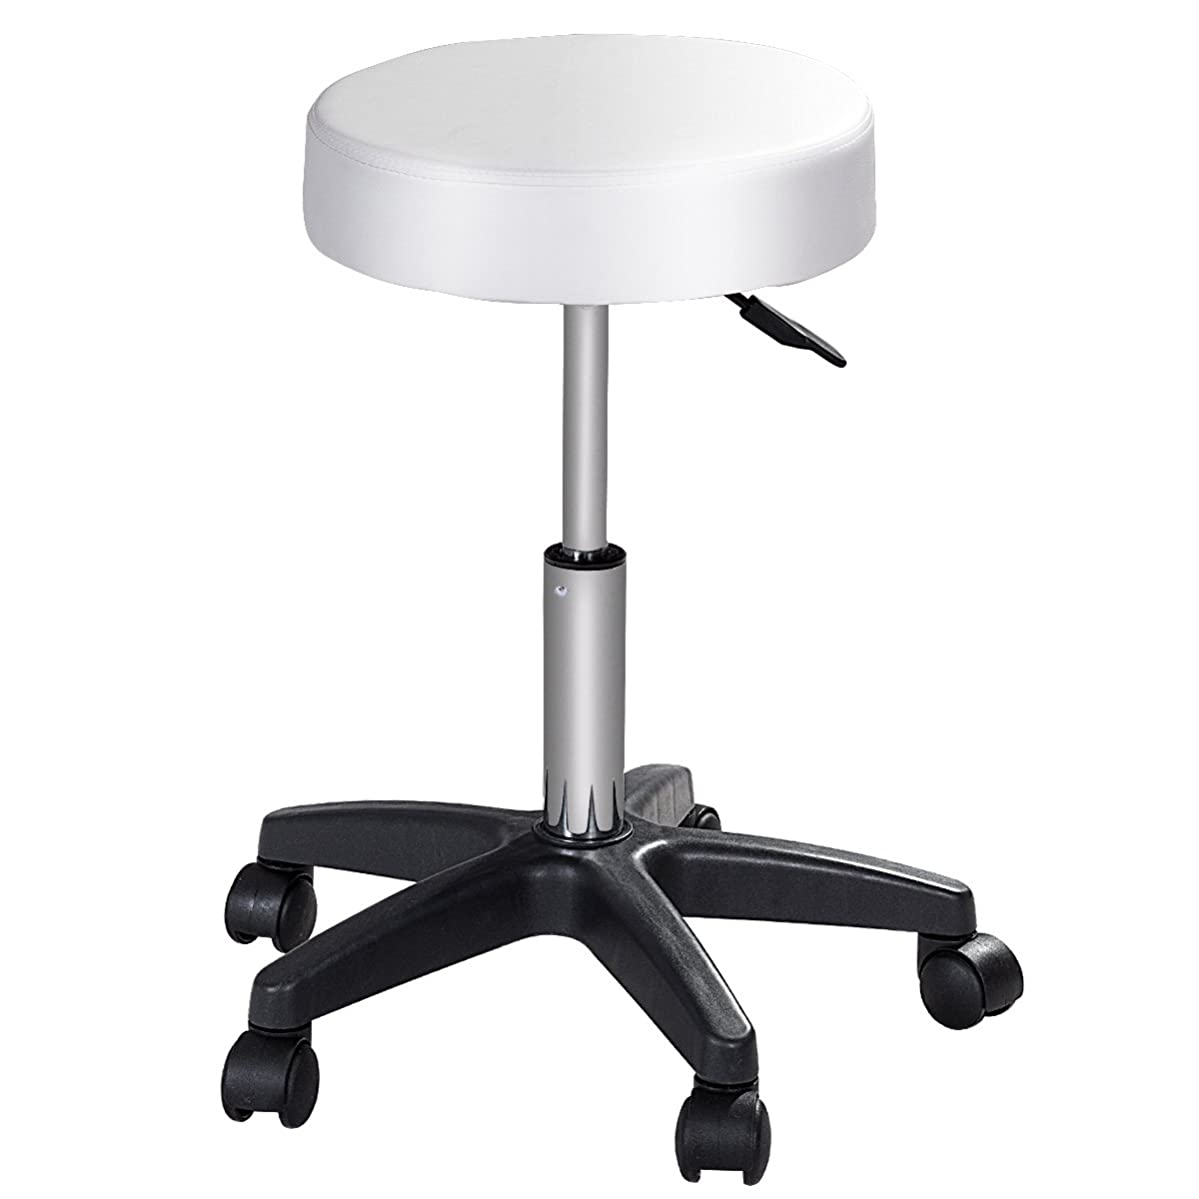 COSTWAY Round Height Adjustable Hydraulic Rolling Swivel Bar Stools with Casters Wheel 360 Degree Rotation Stool Chair for Home Kitchen Office Salon Facial Massage Stool(White)